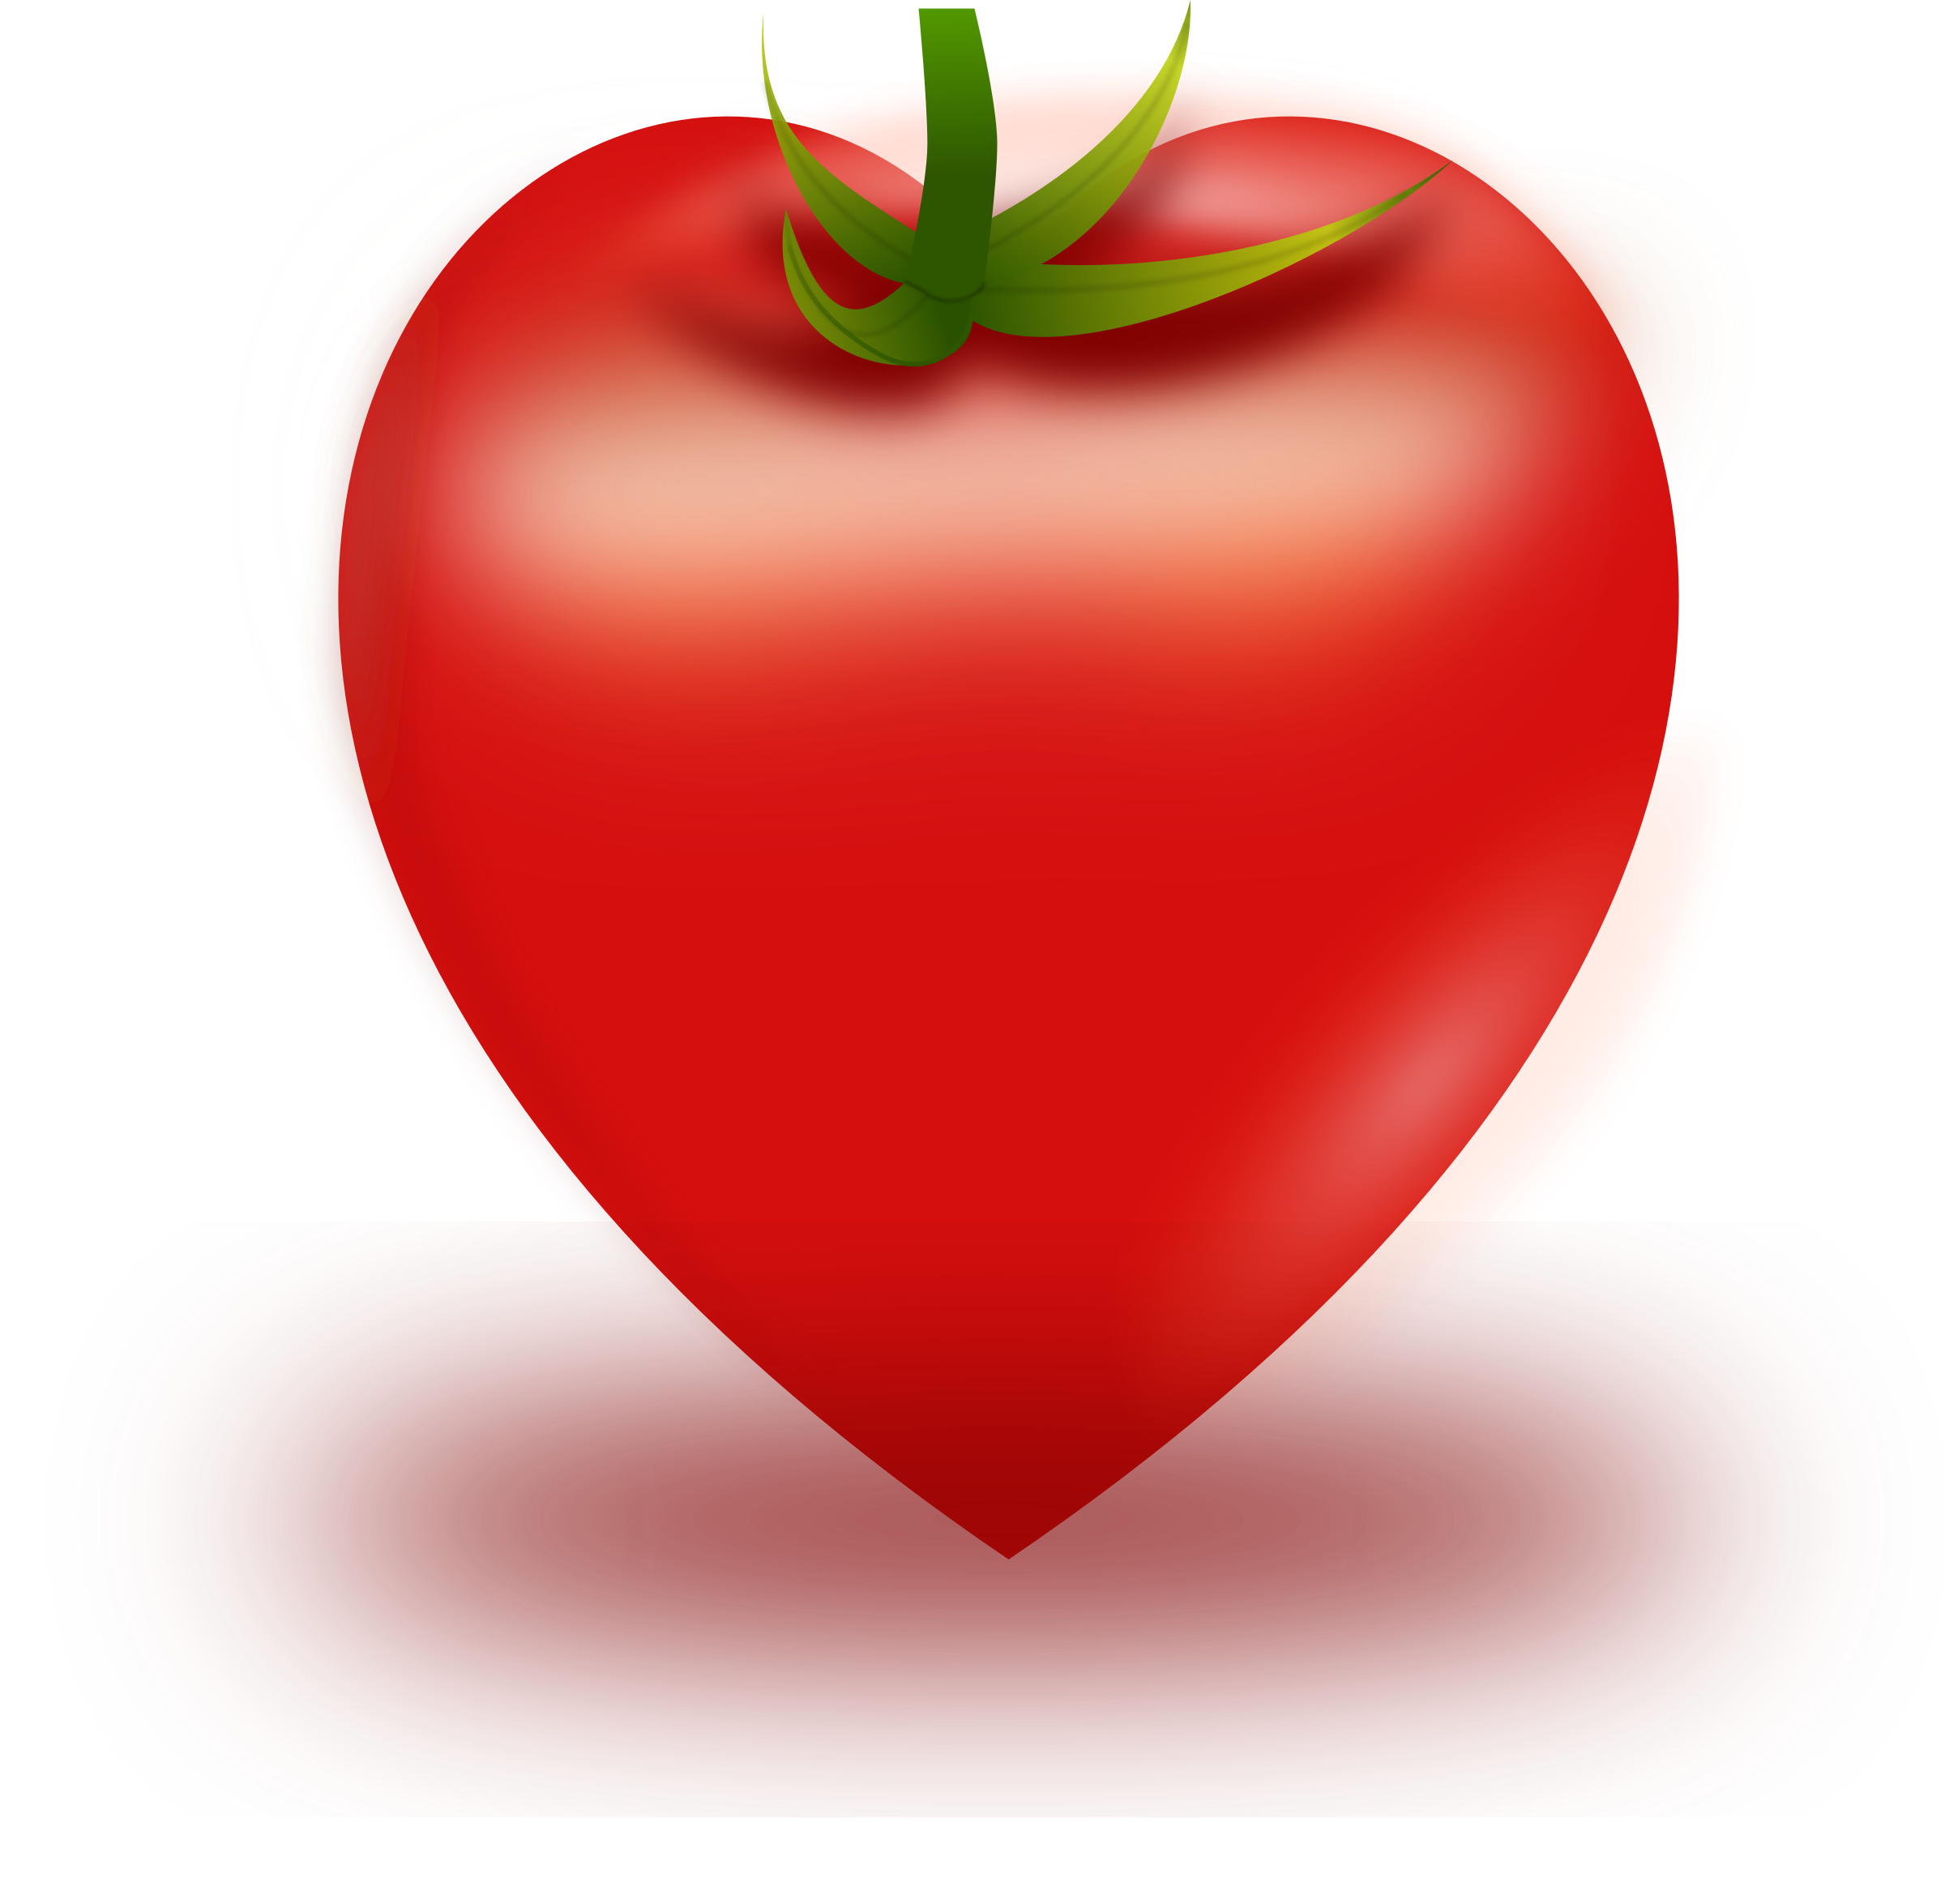 Vector Heart Tomato by mikjay